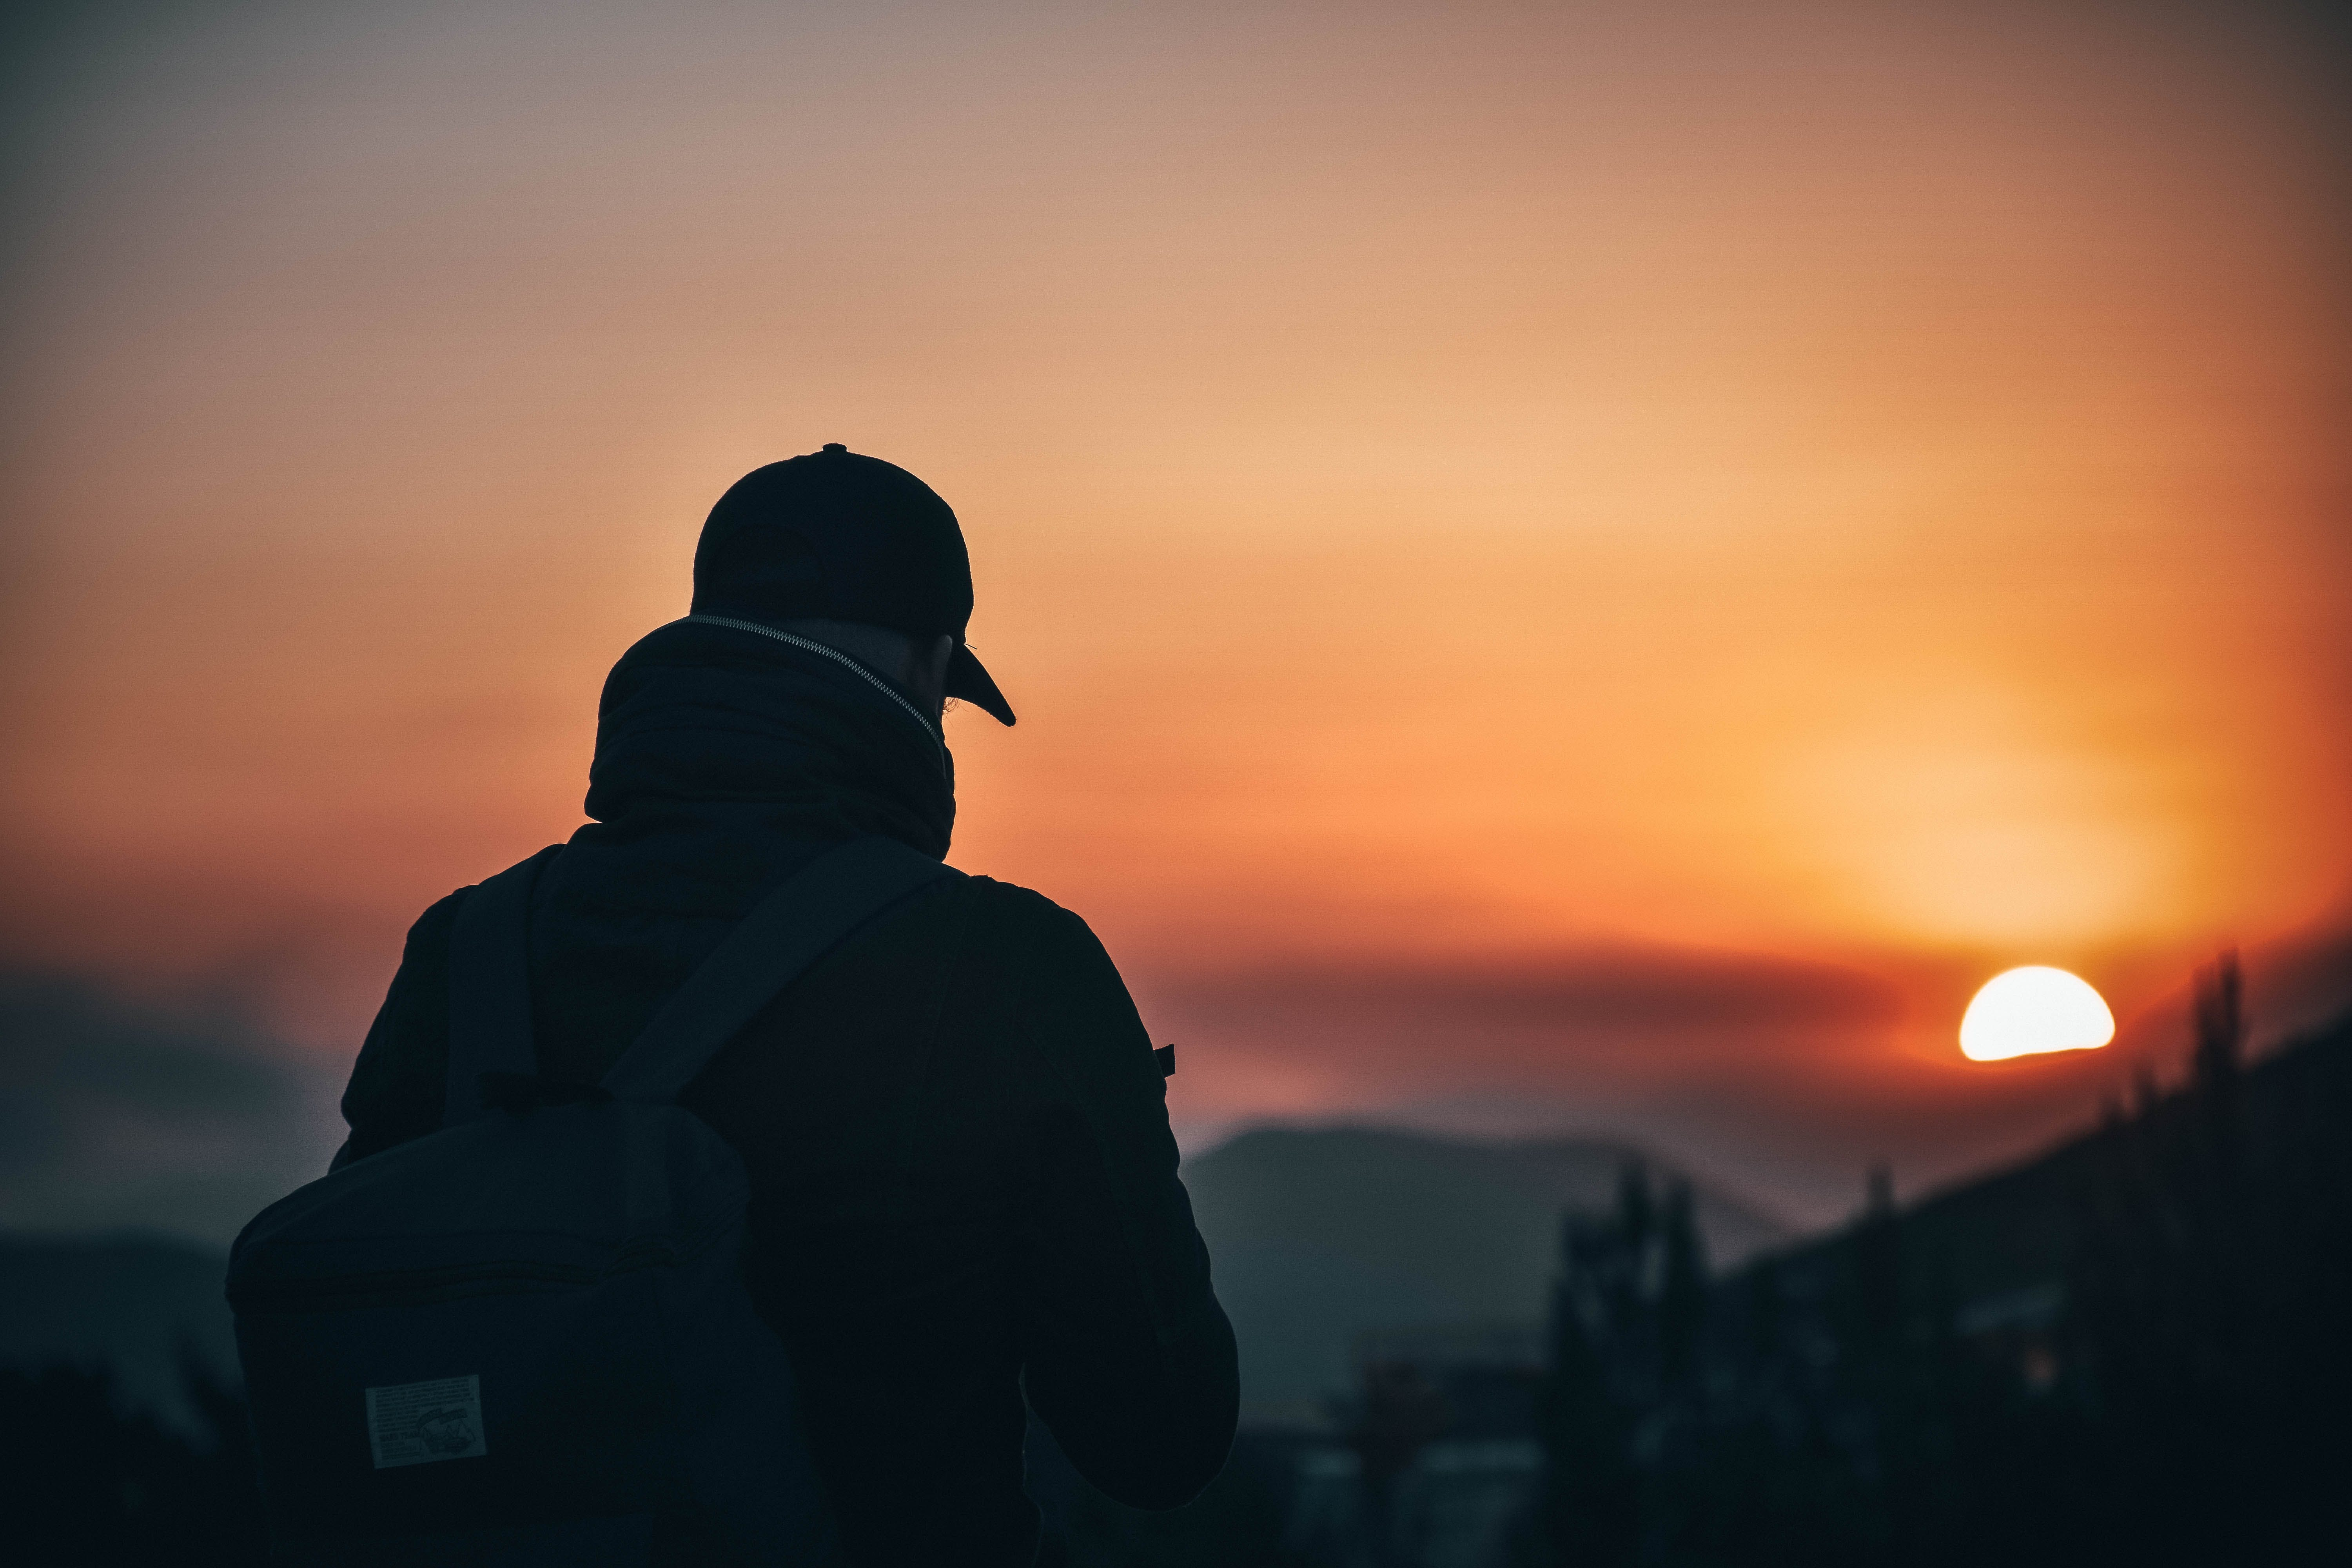 Man Wearing Baseball Cap and Backpack at Golden Hour